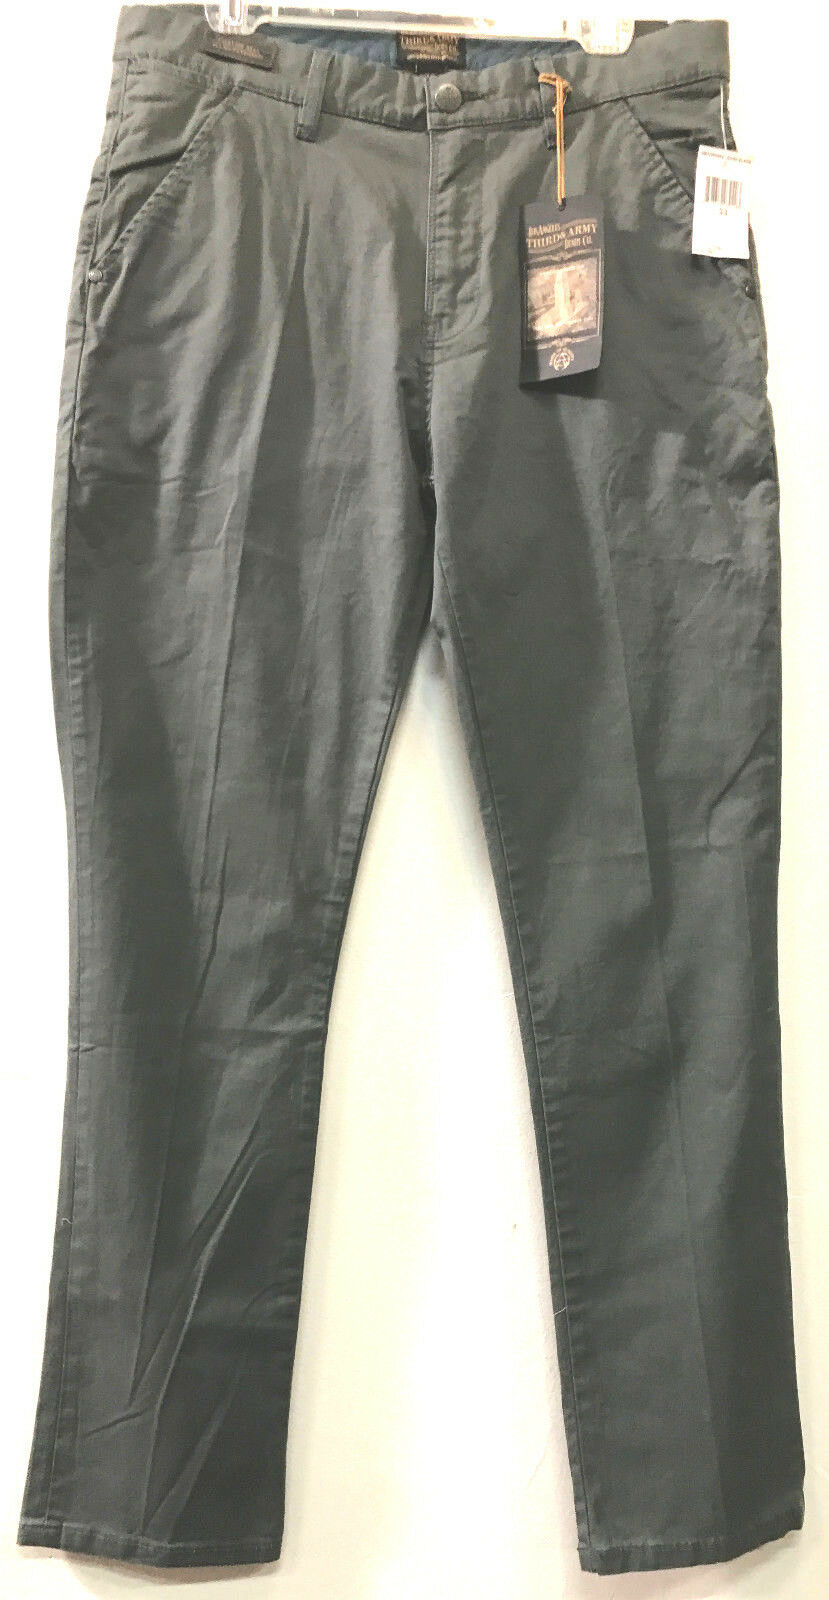 Nwt THIRD & ARMY dark slate handfinished cotton PANTS 33 X 32 Free shipping